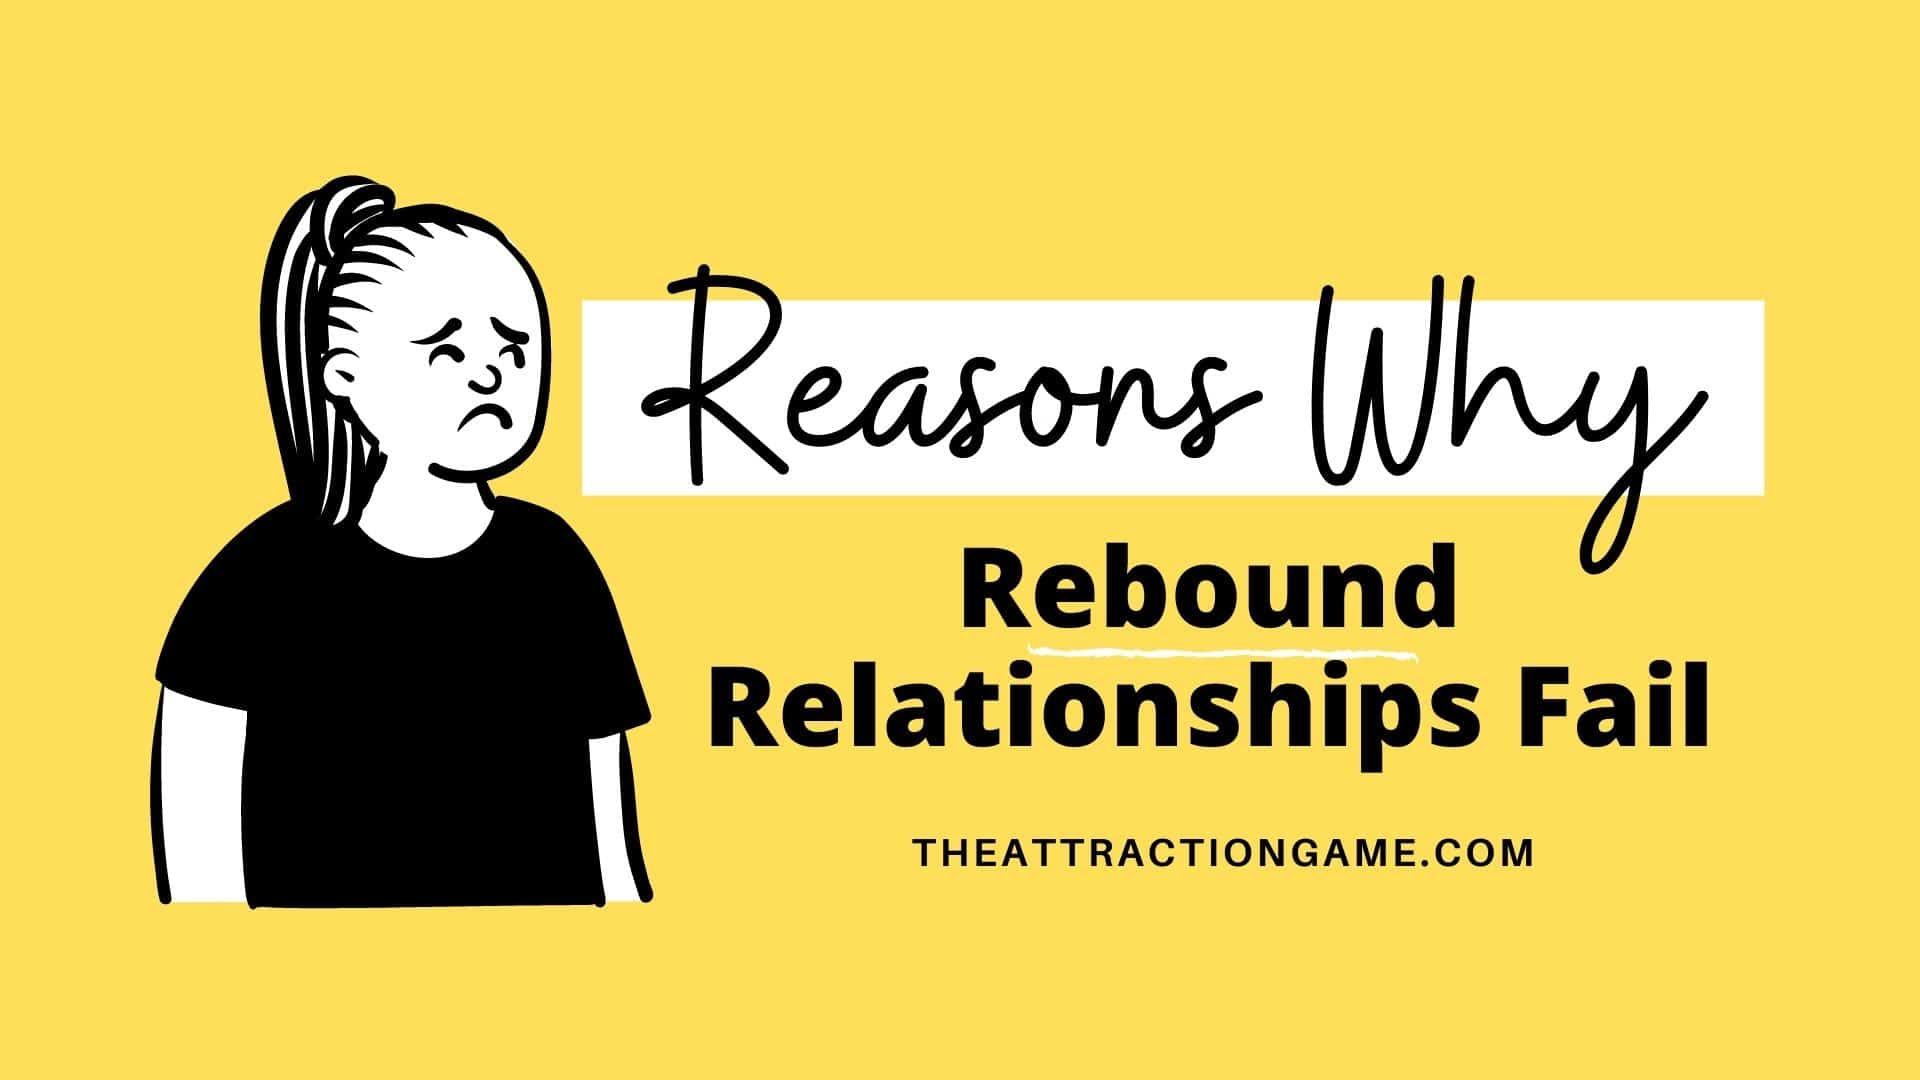 why rebound relationships fail, rebound relationships, reasons why rebound relationship fail, how to avoid a rebound relationship, signs you're in a rebound relationships, rebound relationship tips